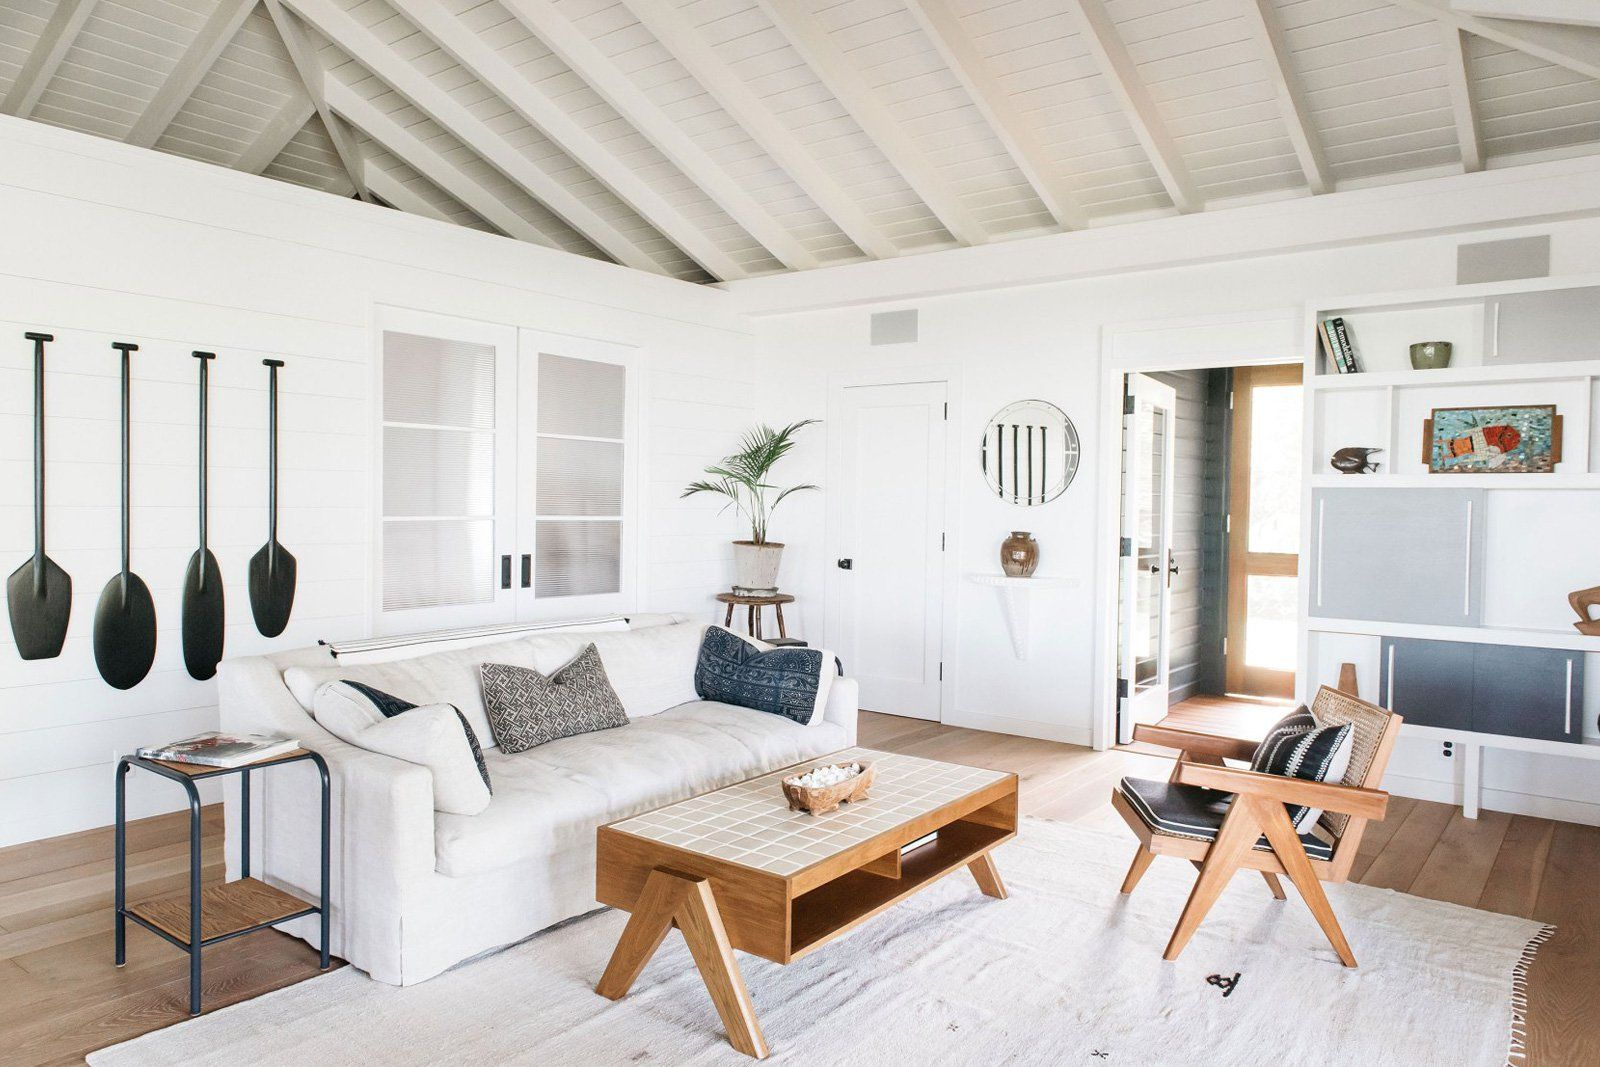 Vacation Home Rentals, Architectural Gems | Beach cottages, Cabin ...